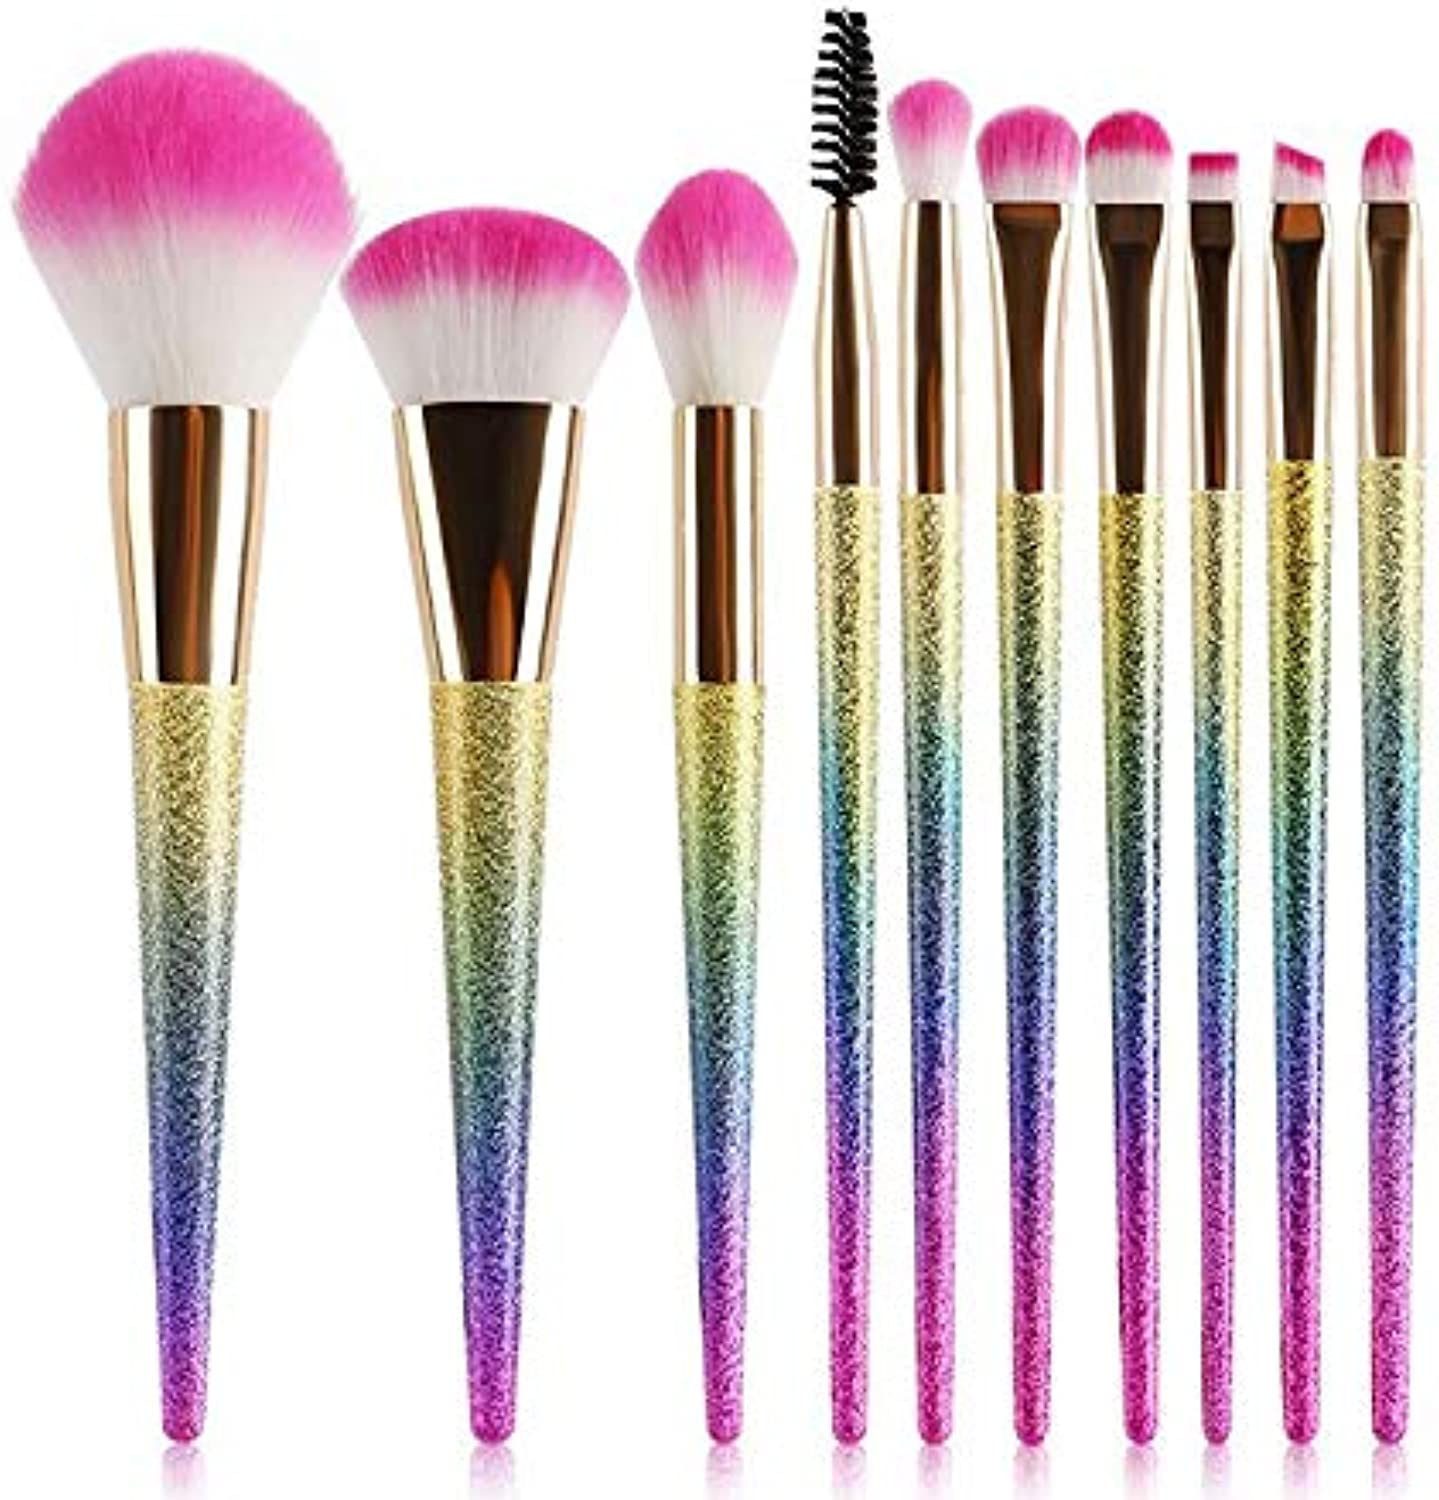 Fashion 10PCS Modern Frosted Handle Makeup Brush(colorful) with OPP Bag for Eye Shadow Brow Eyeliner Smoky Pointed Pretty (color   colorful, Size   17  11  2)